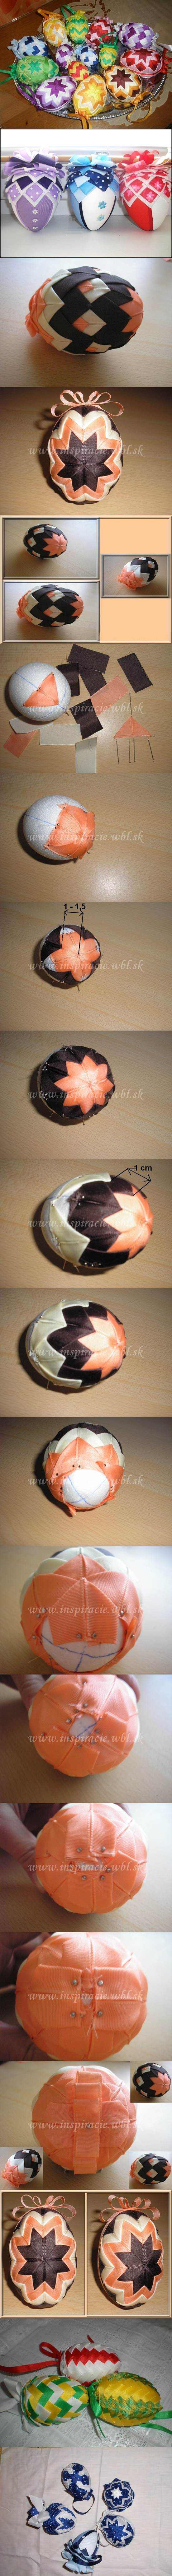 DIY Patchwork Decorated Easter Eggs 2